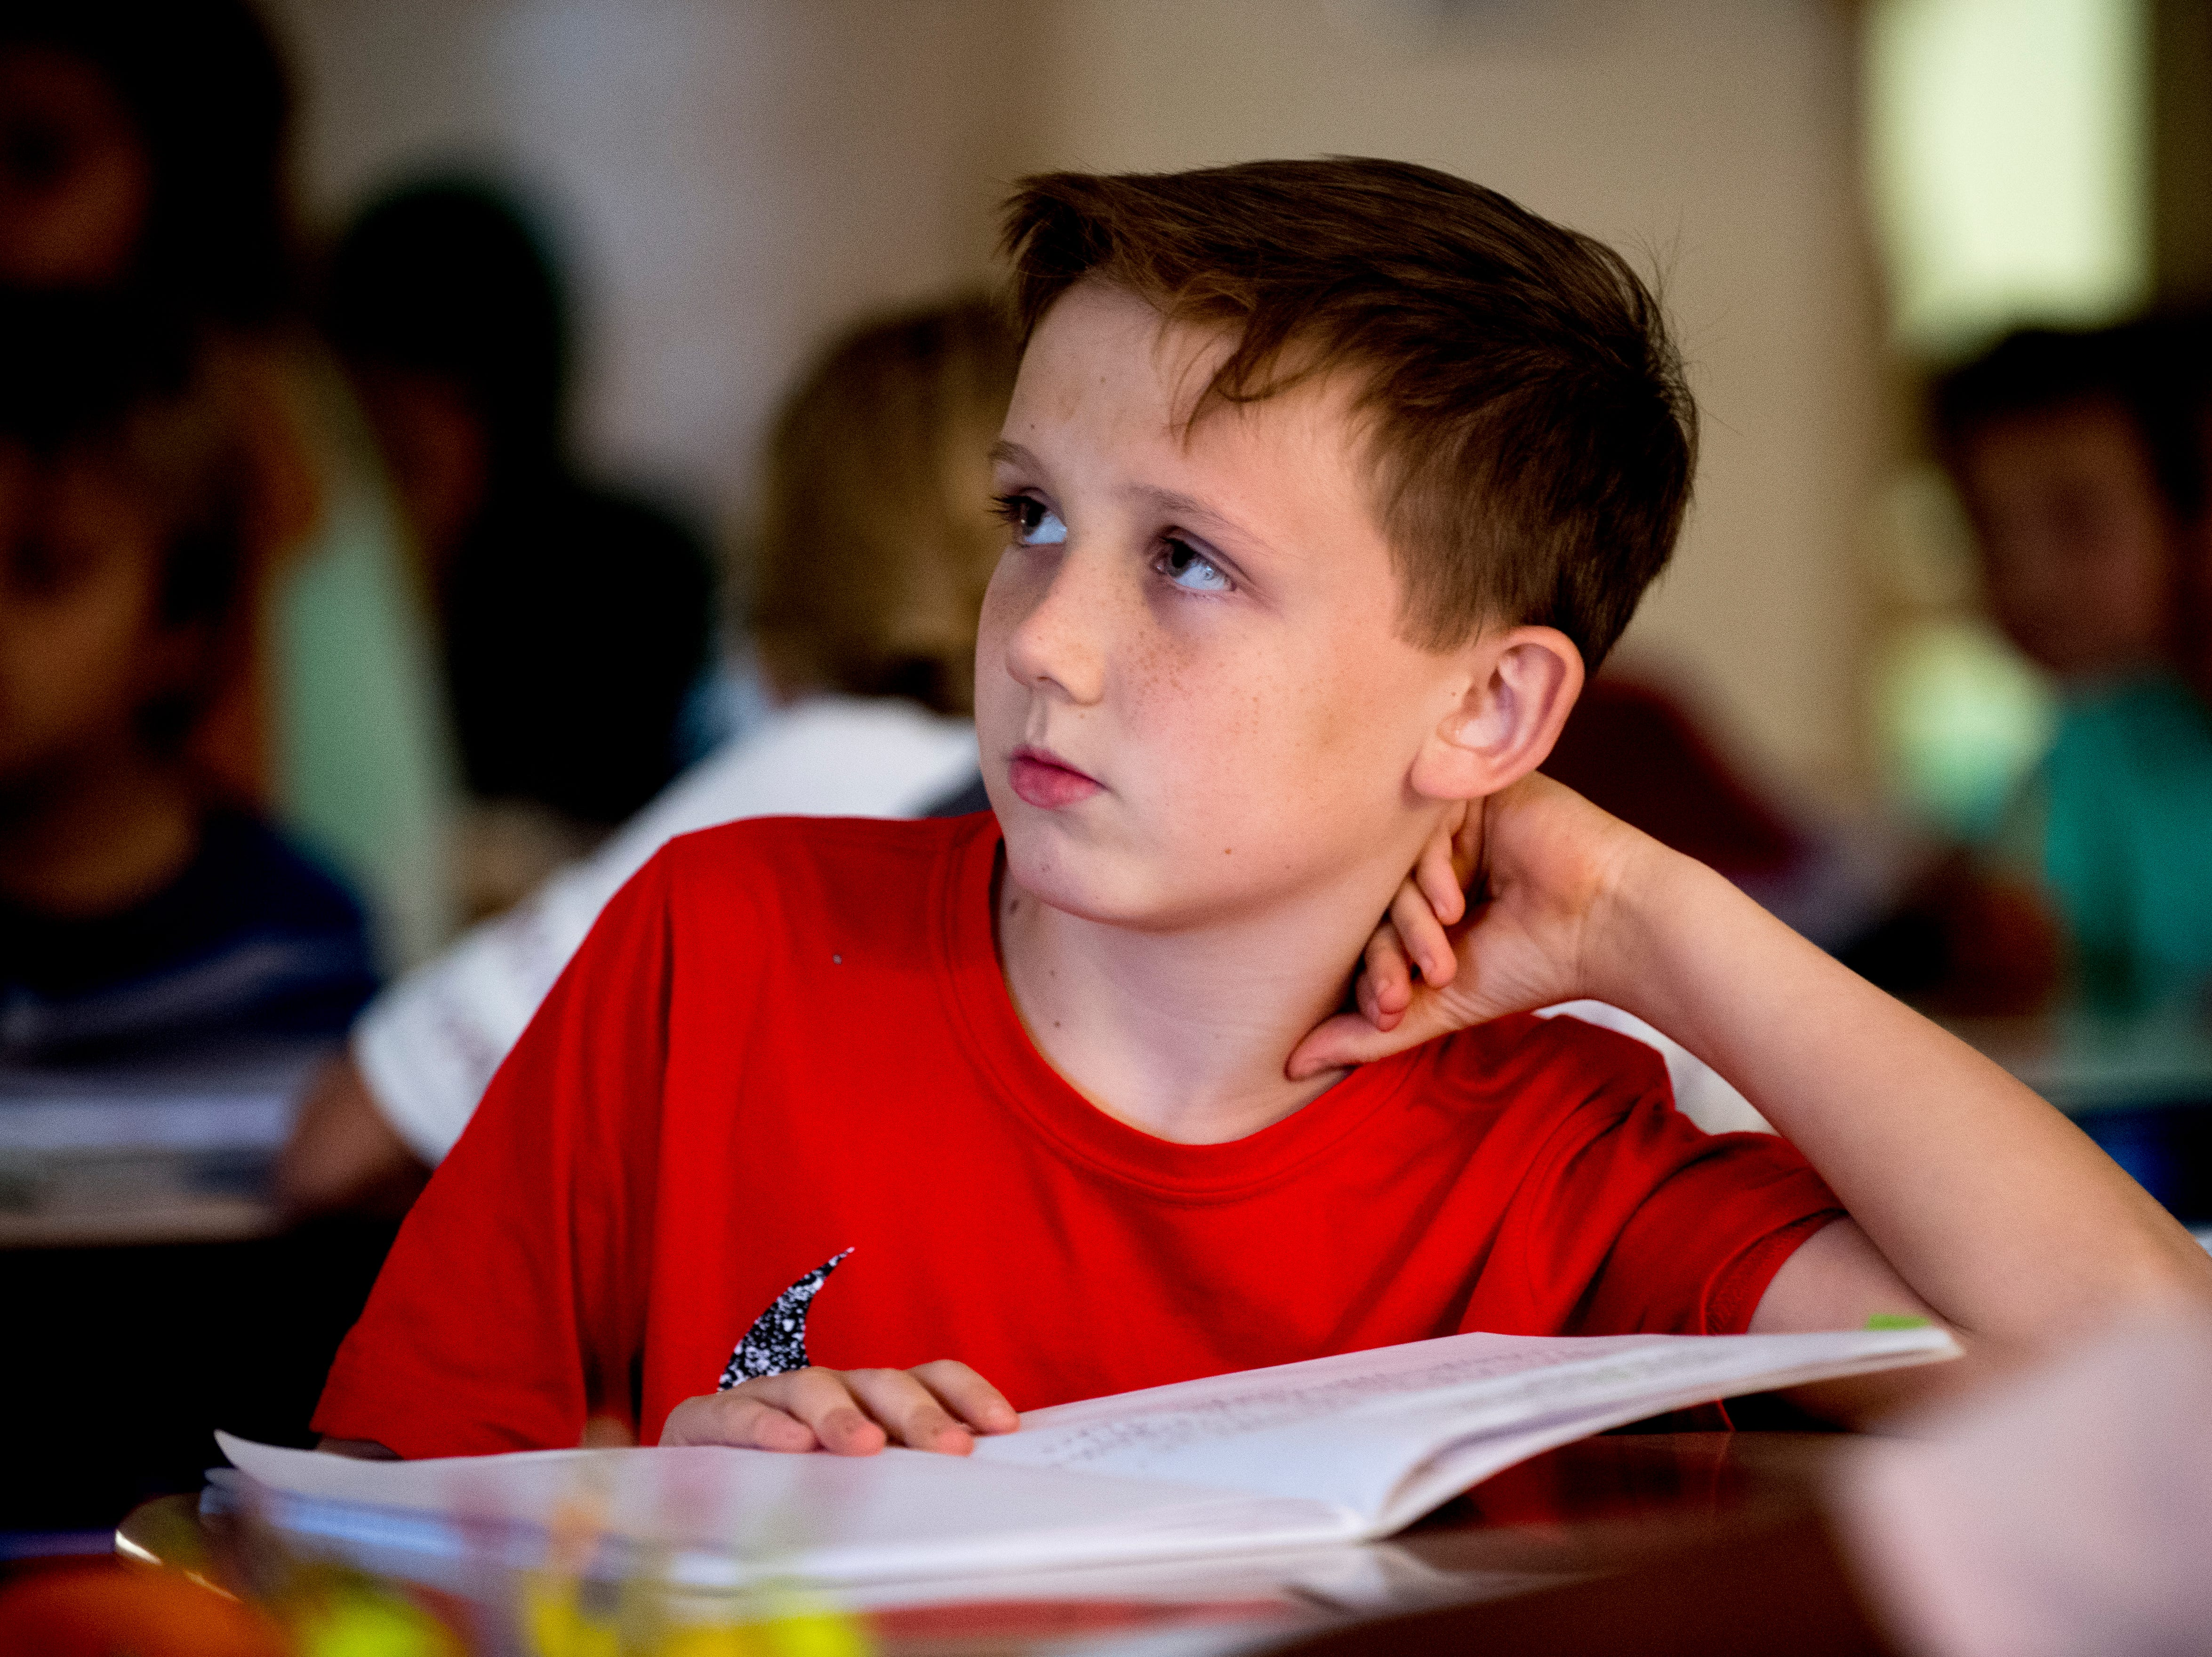 Third-grader Max M. listens as his teacher Nikki Sawyers at Blue Grass Elementary School in West Knoxville, Tennessee on Wednesday, August 29, 2018. Forty percent of third graders in Knox County Schools are reading at grade level as literacy continues to be a top priority for the school district and Superintendent Bob Thomas.